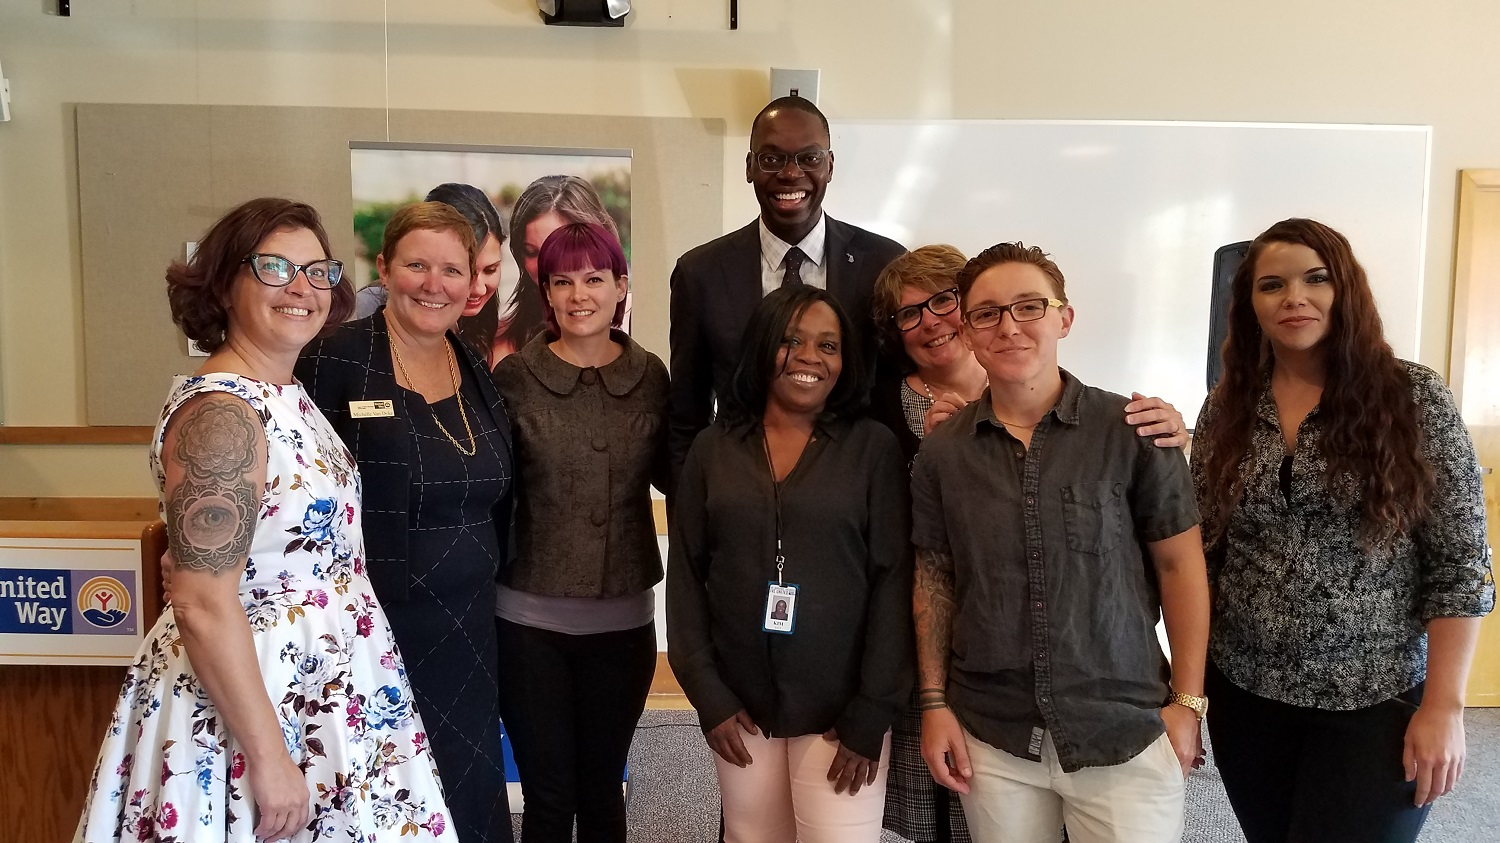 Lt. Governor Garlin Gilchrist with Heart of West Michigan United Way's 2-1-1 team.